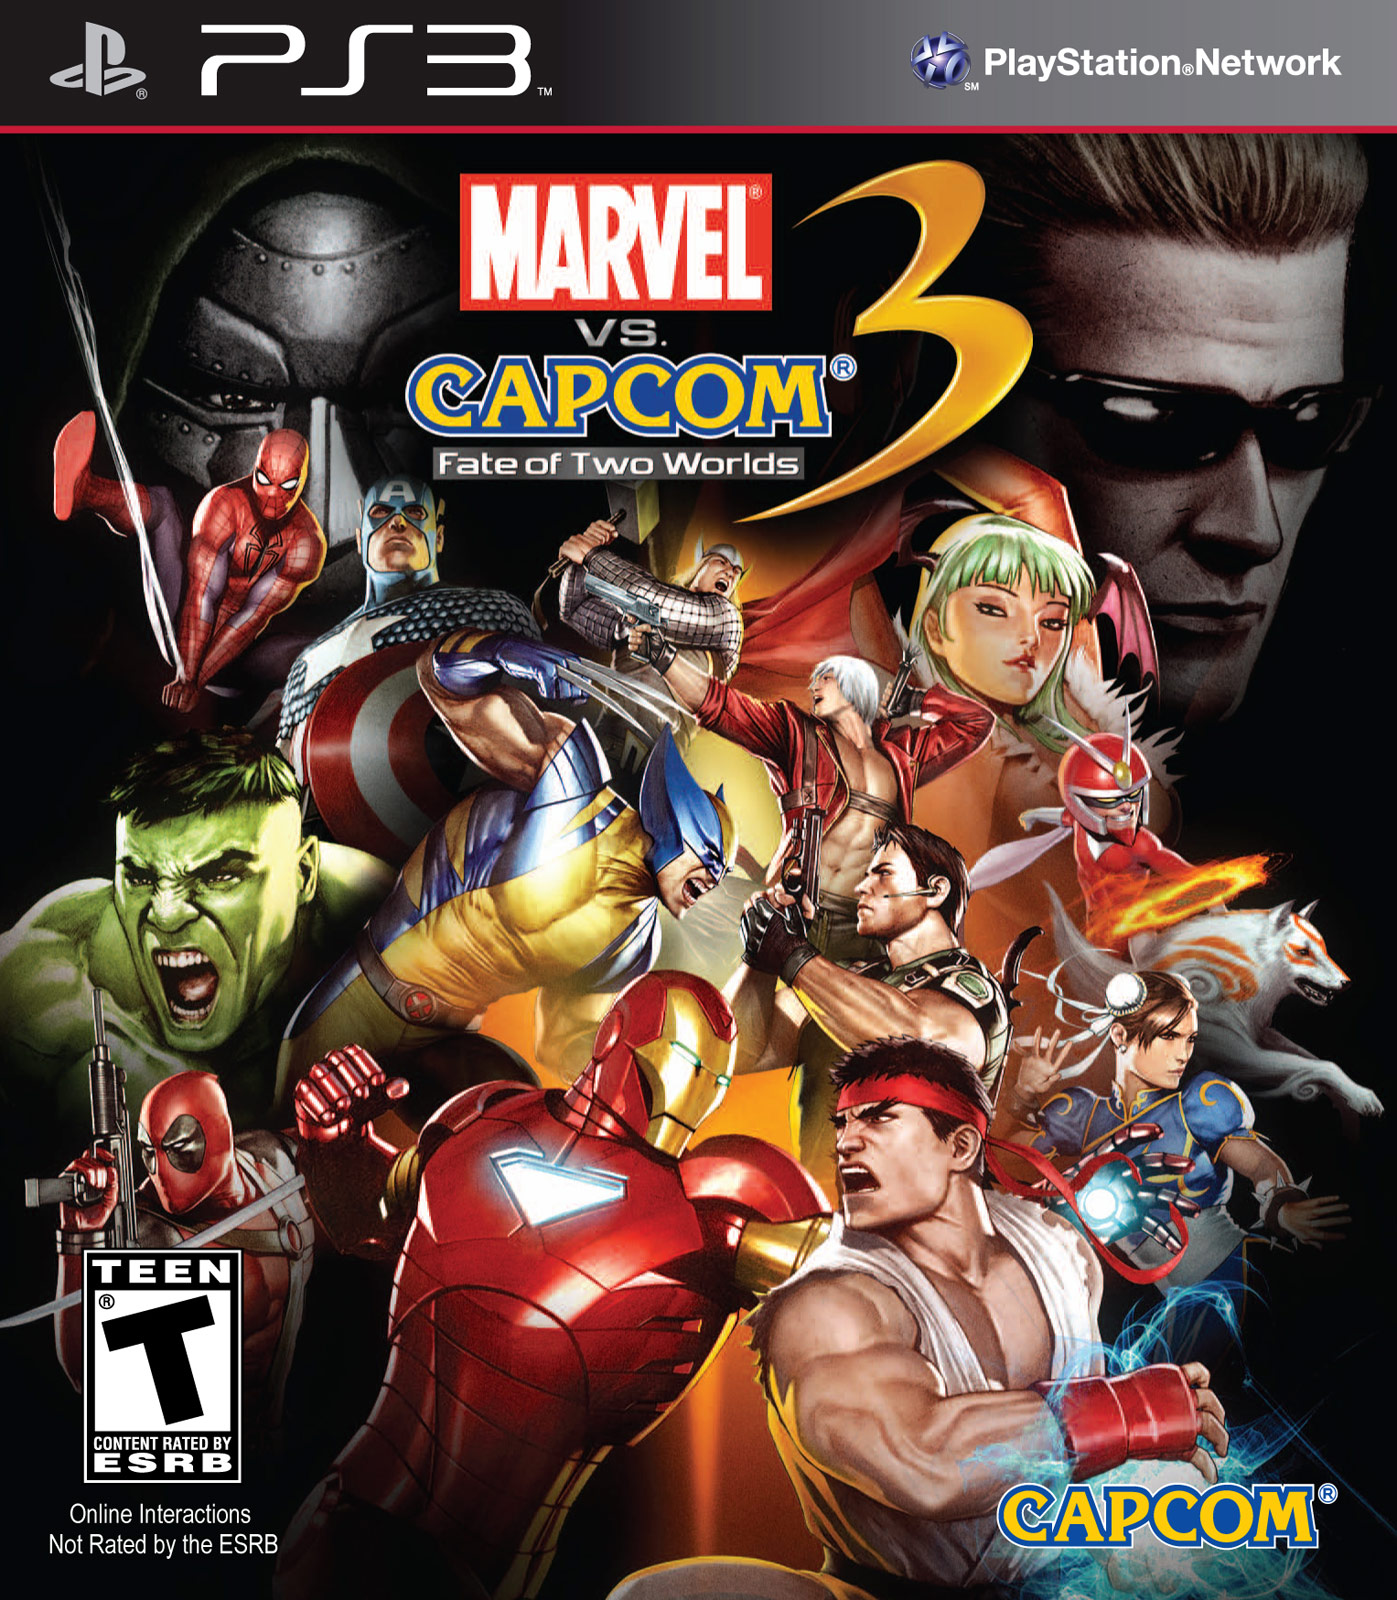 Marvel VS Capcom 3 TFG Review Artwork Gallery